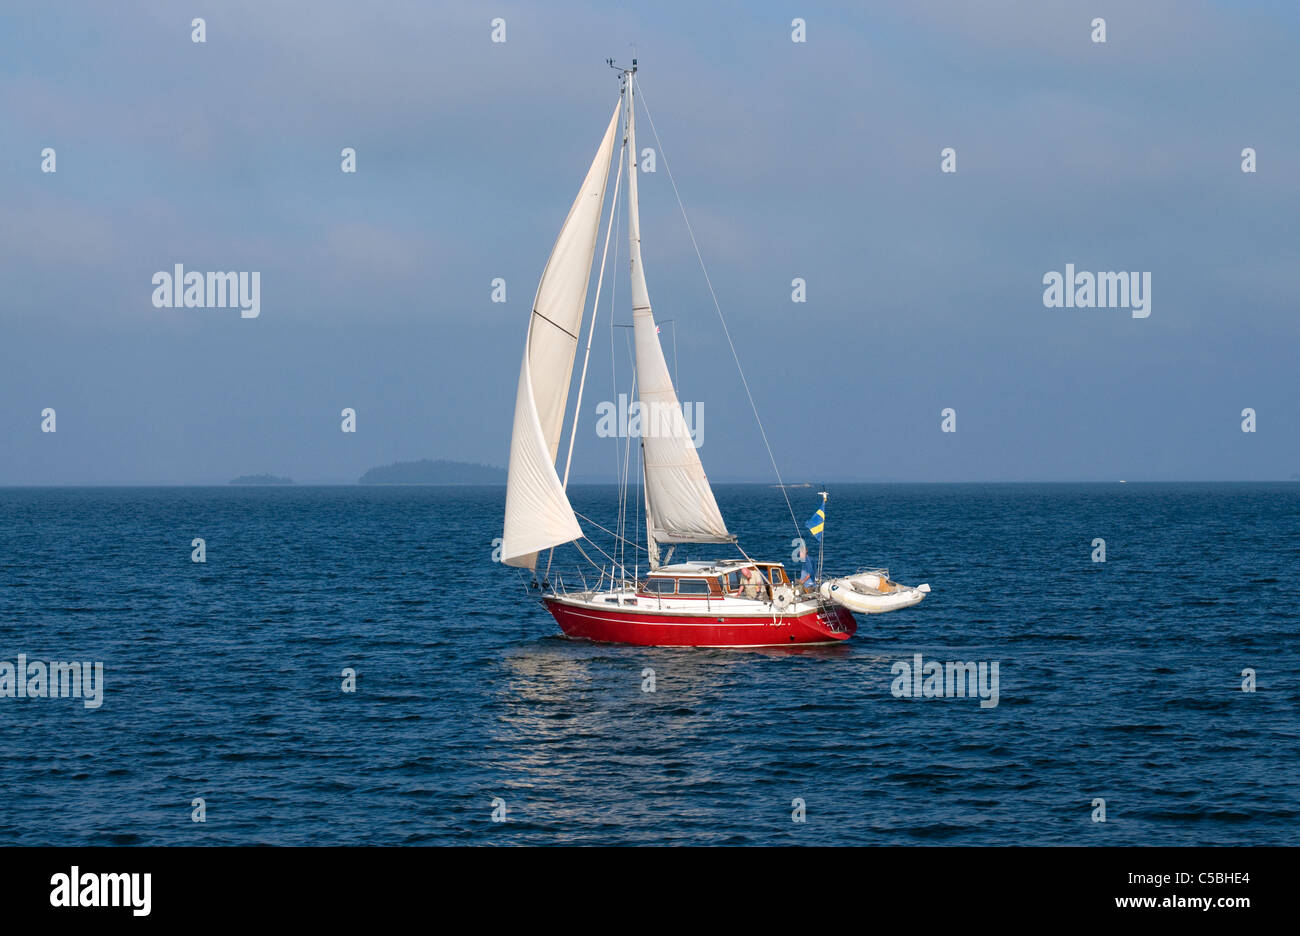 Red Sailing-boat sailing the waters of Stockholm archipelago, Sweden - Stock Image